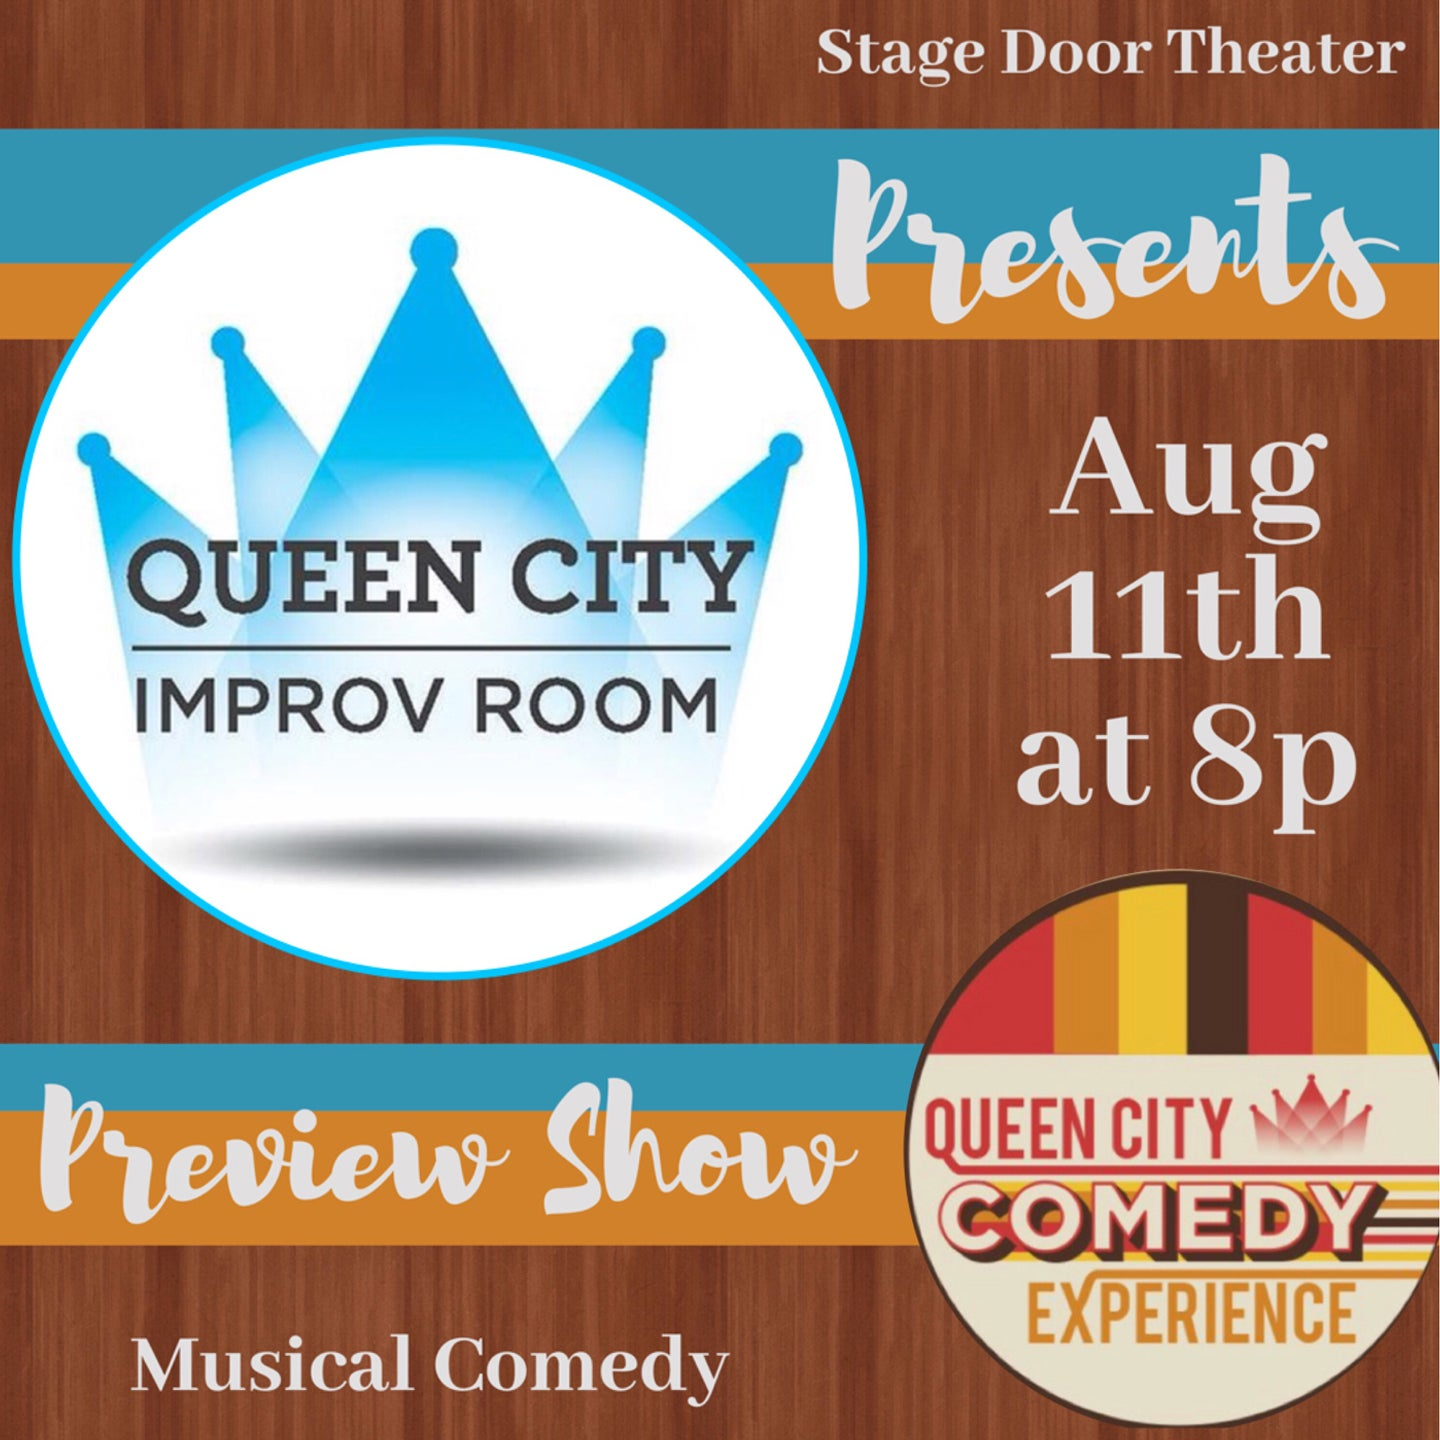 Queen City Improv Room:  Comedy Experience Preview Show